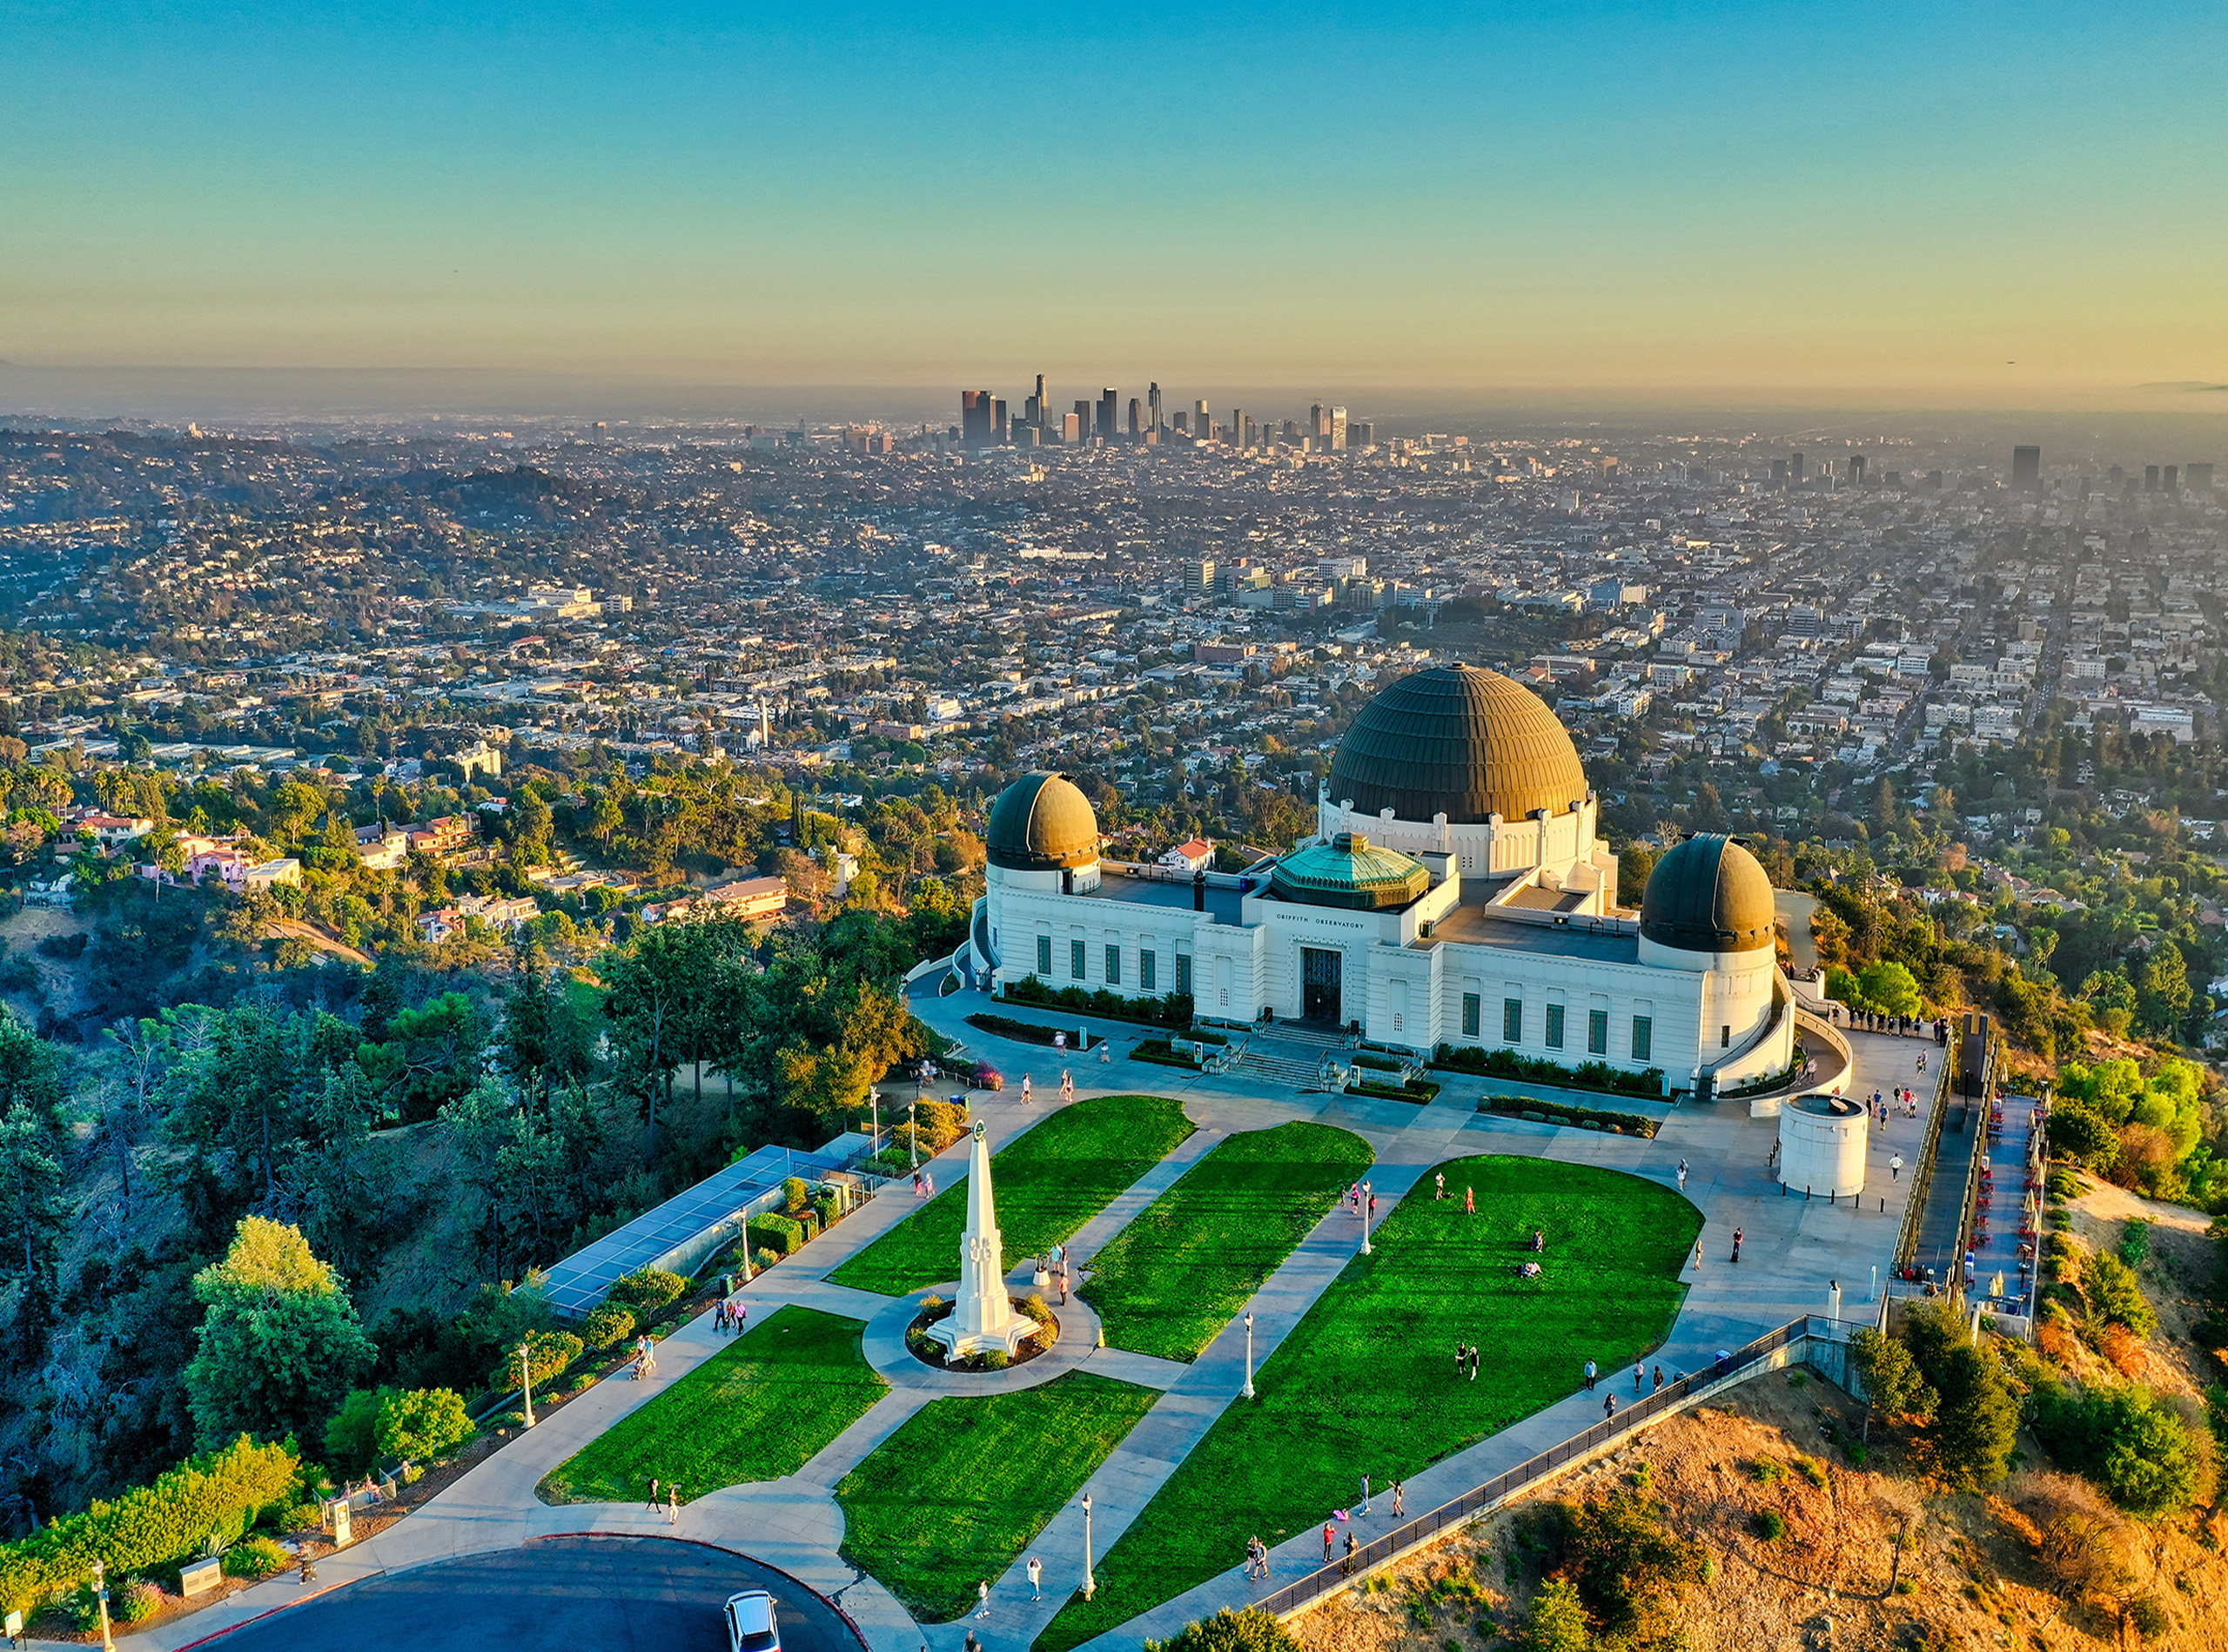 Griffith Observatory by day. Photo by Cameron Venti (https://unsplash.com/photos/c5GkEd-j5vI).